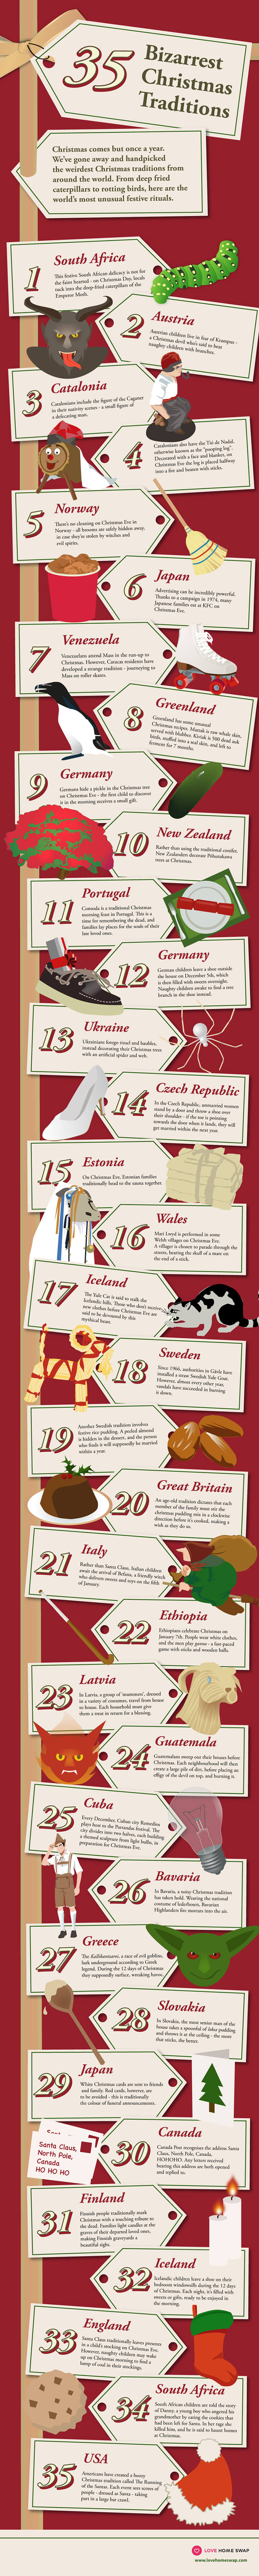 Infographic: 35 bizarre Christmas traditions